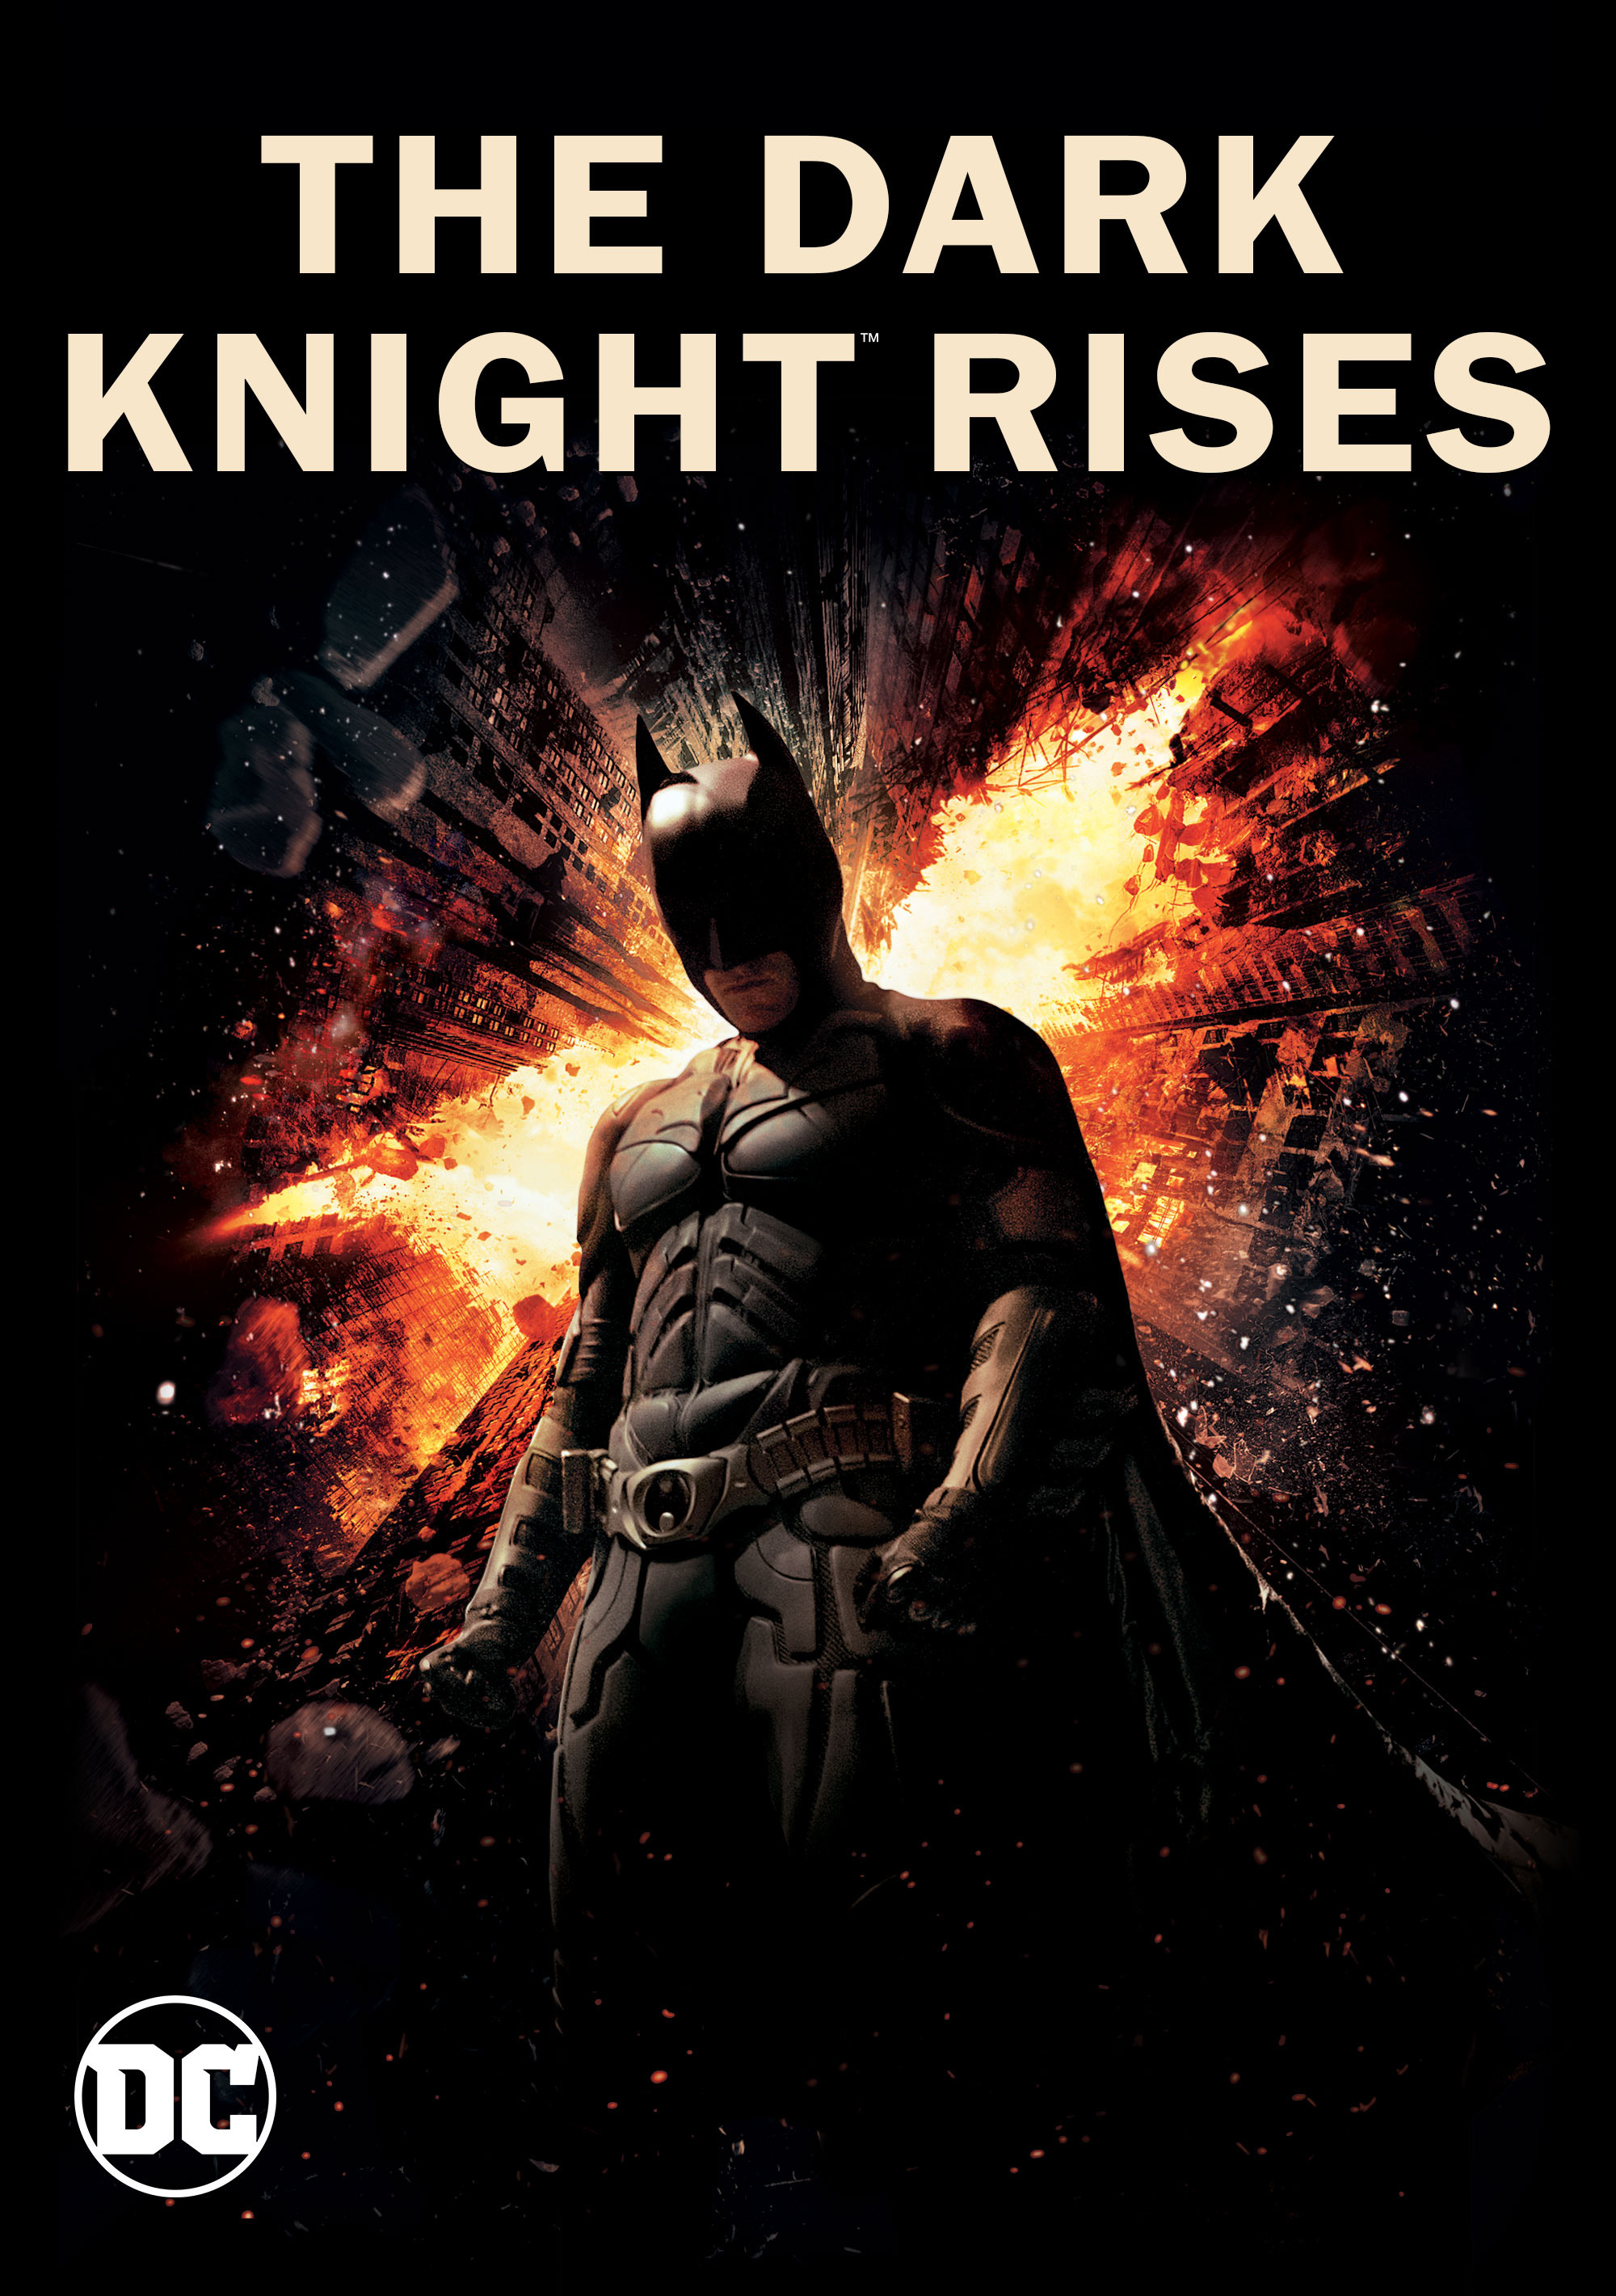 The Dark Knight Rises: Xbox SmartGlass